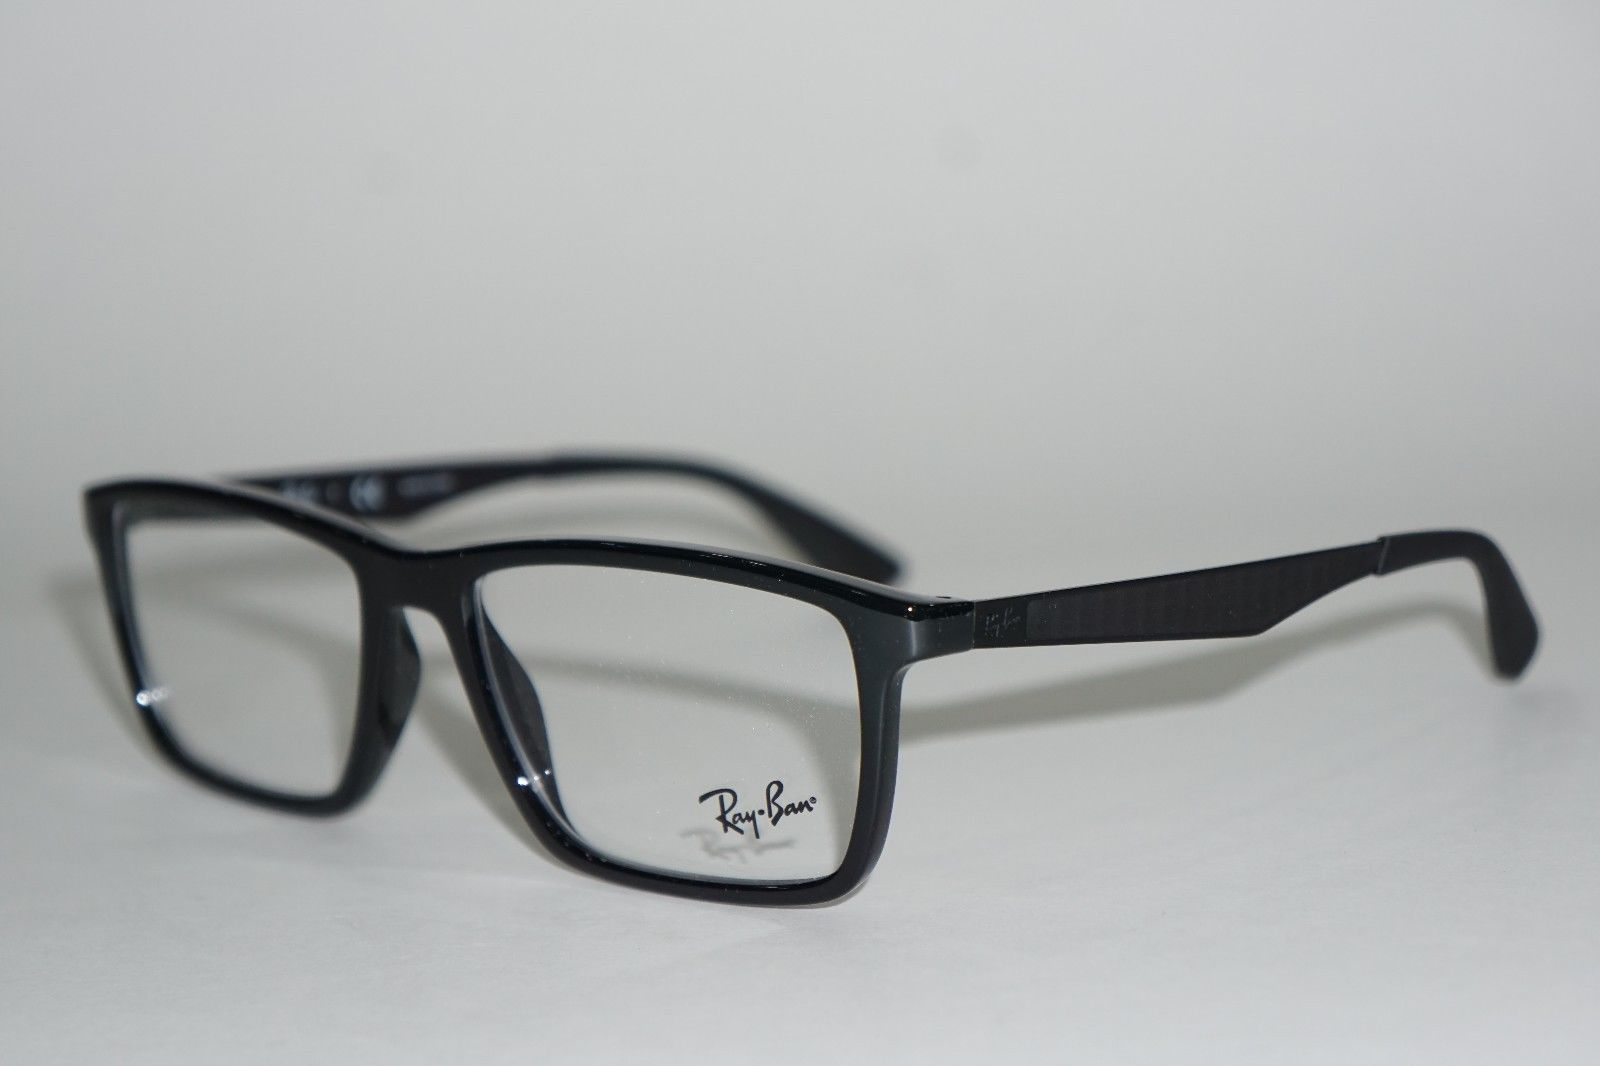 8206ba77c6 NEW RAY-BAN RB 7056 2000 BLACK EYEGLASSES AUTHENTIC RX RB7056 W CASE 55